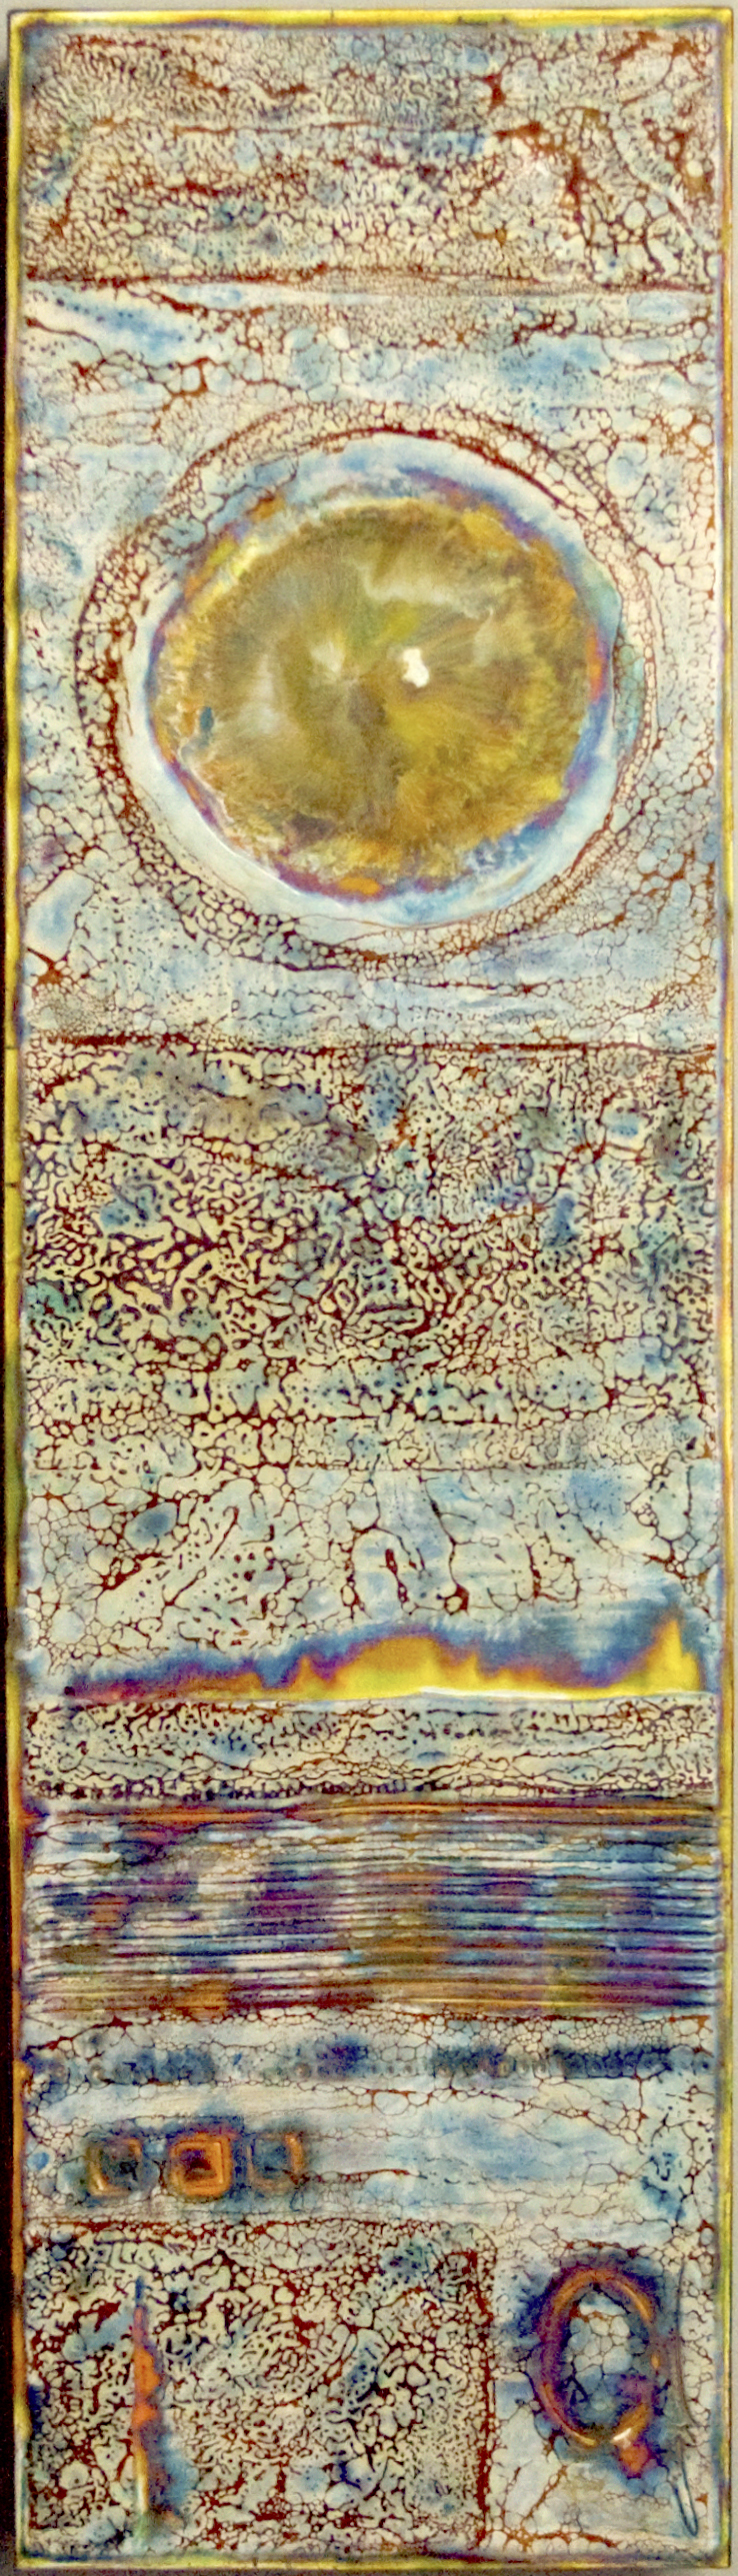 030113Abstract10x30x2 copy.jpg